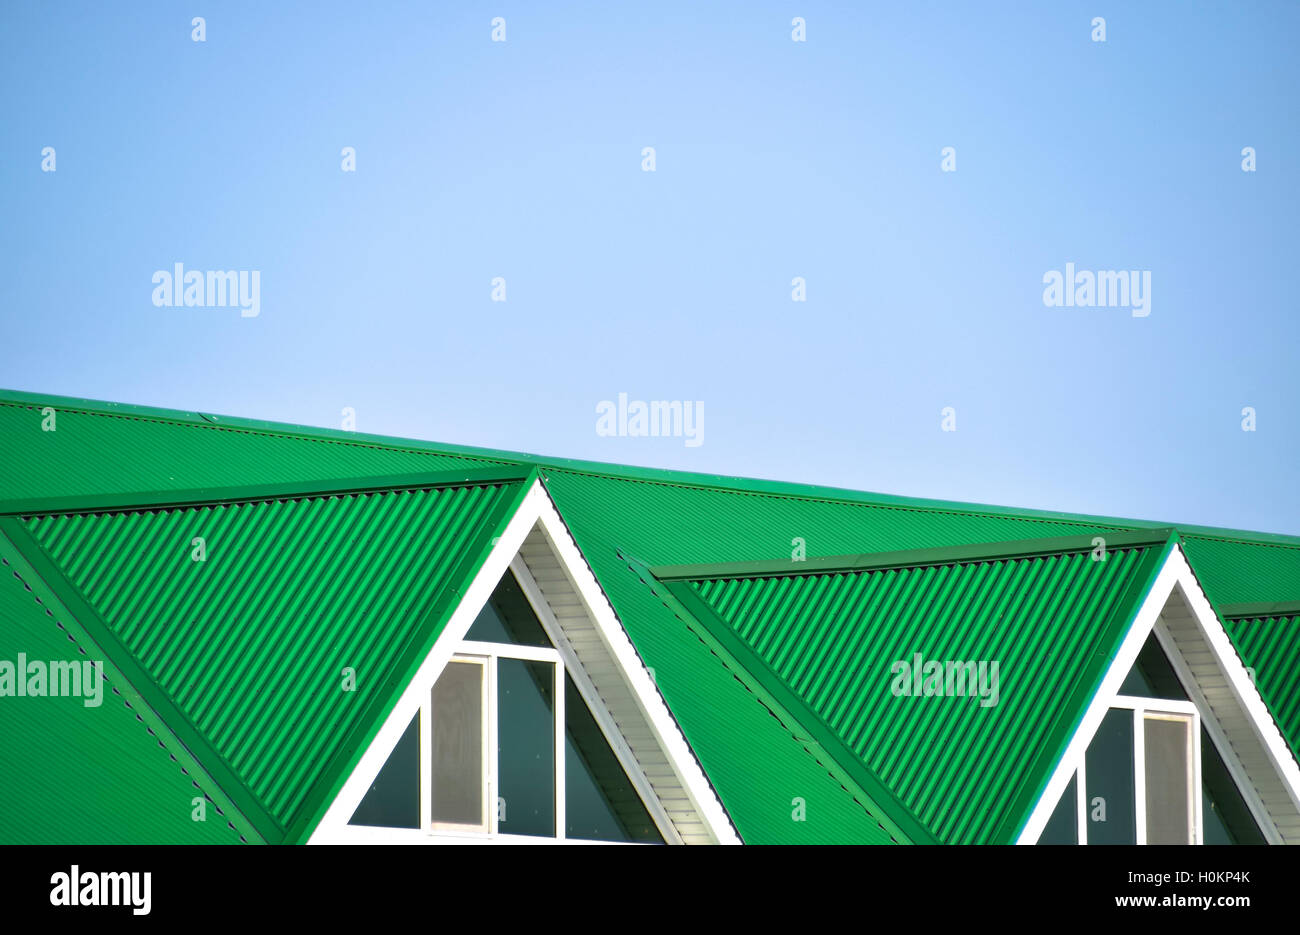 Corrugated Plastic Windows : The house with plastic windows and a green roof of